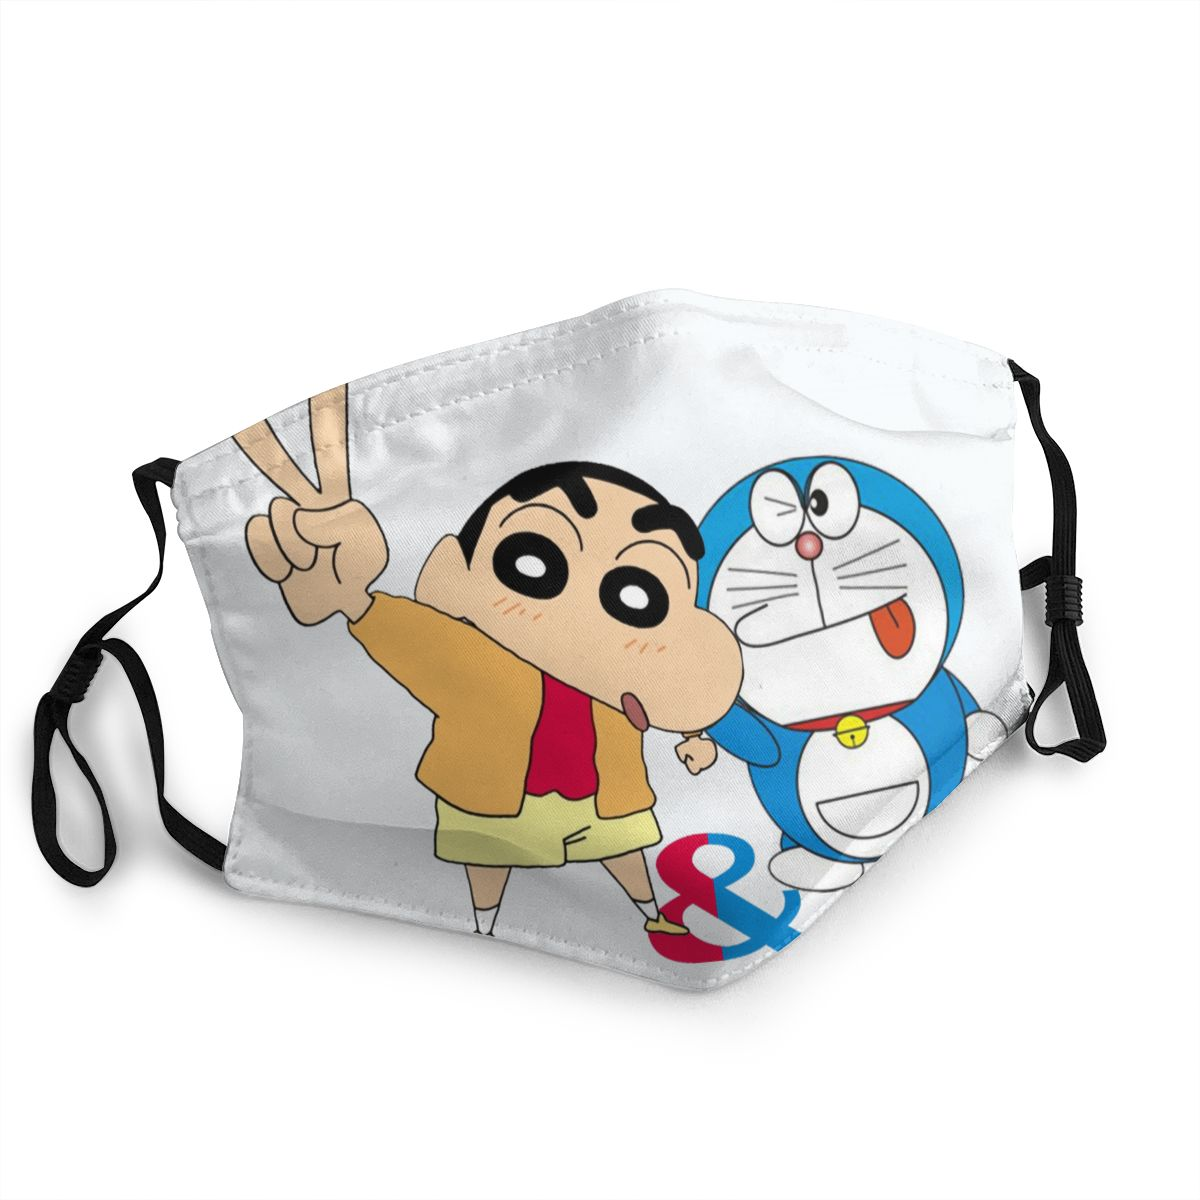 Crayon Shin-chan Reusable Face Mask Doraemon Anti Bacterial Dust Mask Protection Mask Respirator Mouth Muffle